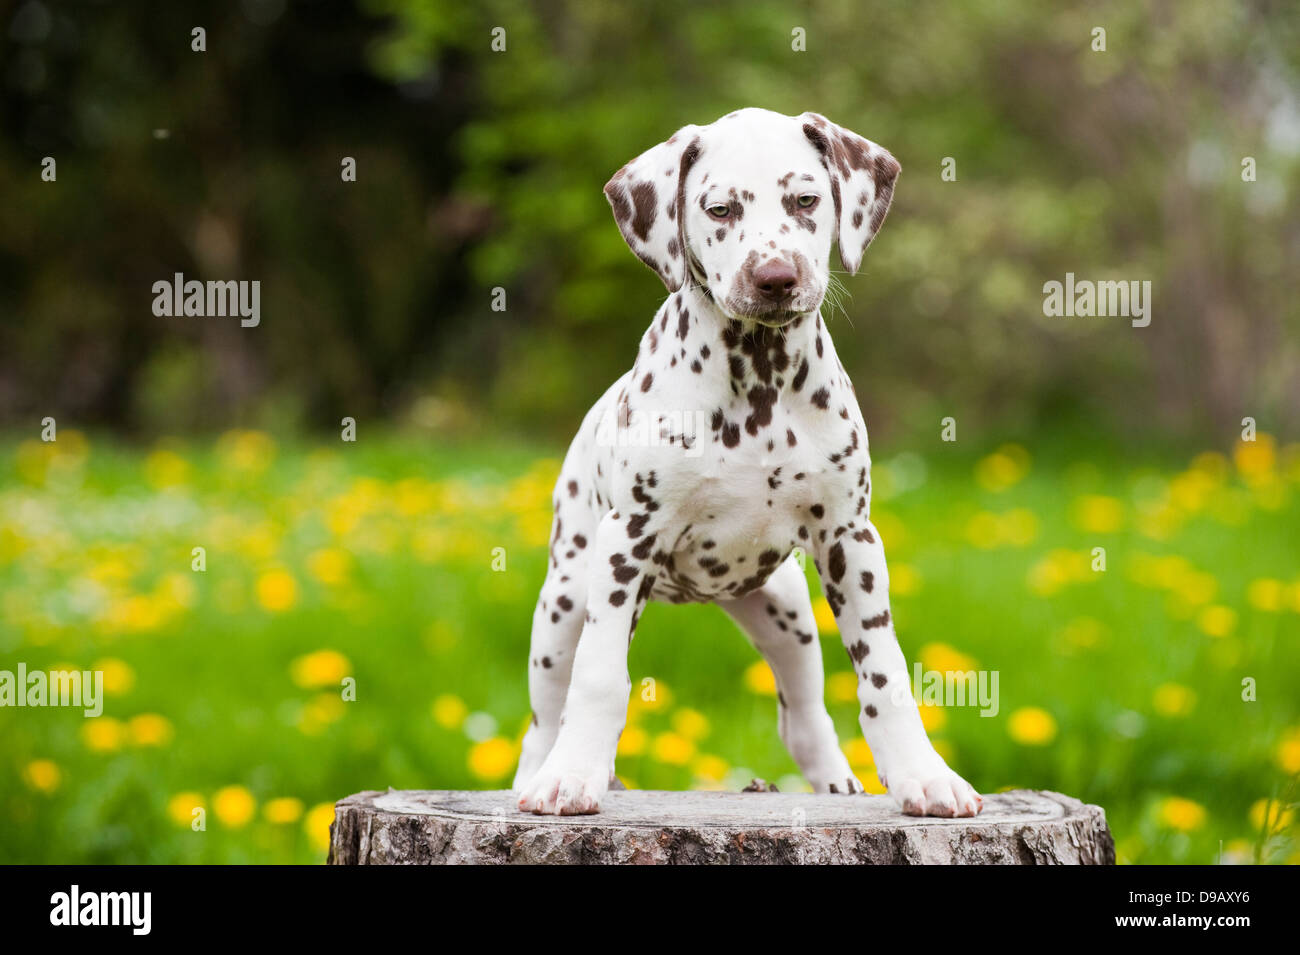 Dalmatian puppy in a meadow - Stock Image